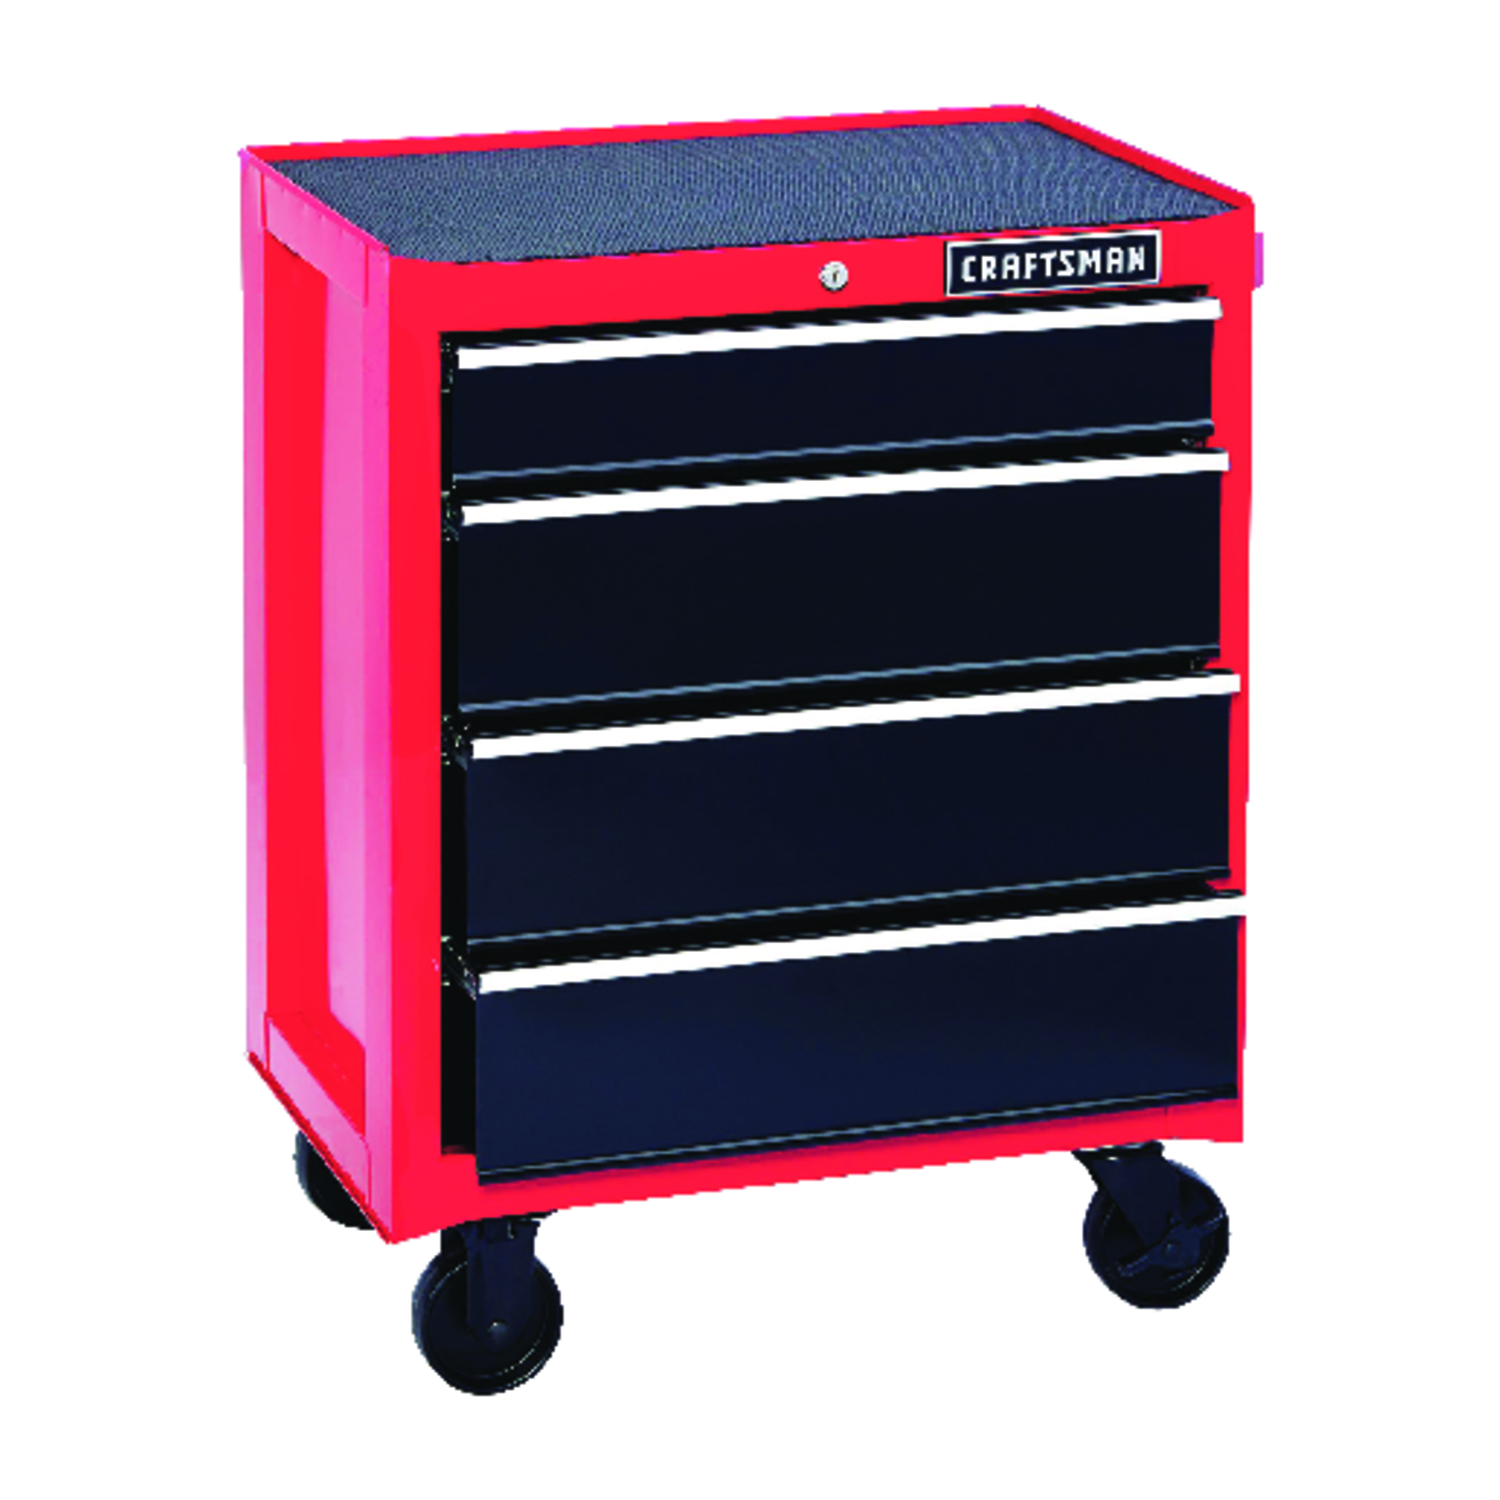 Delicieux Craftsman 34 In. H X 18 In. D 4 Drawer Red/Black Steel